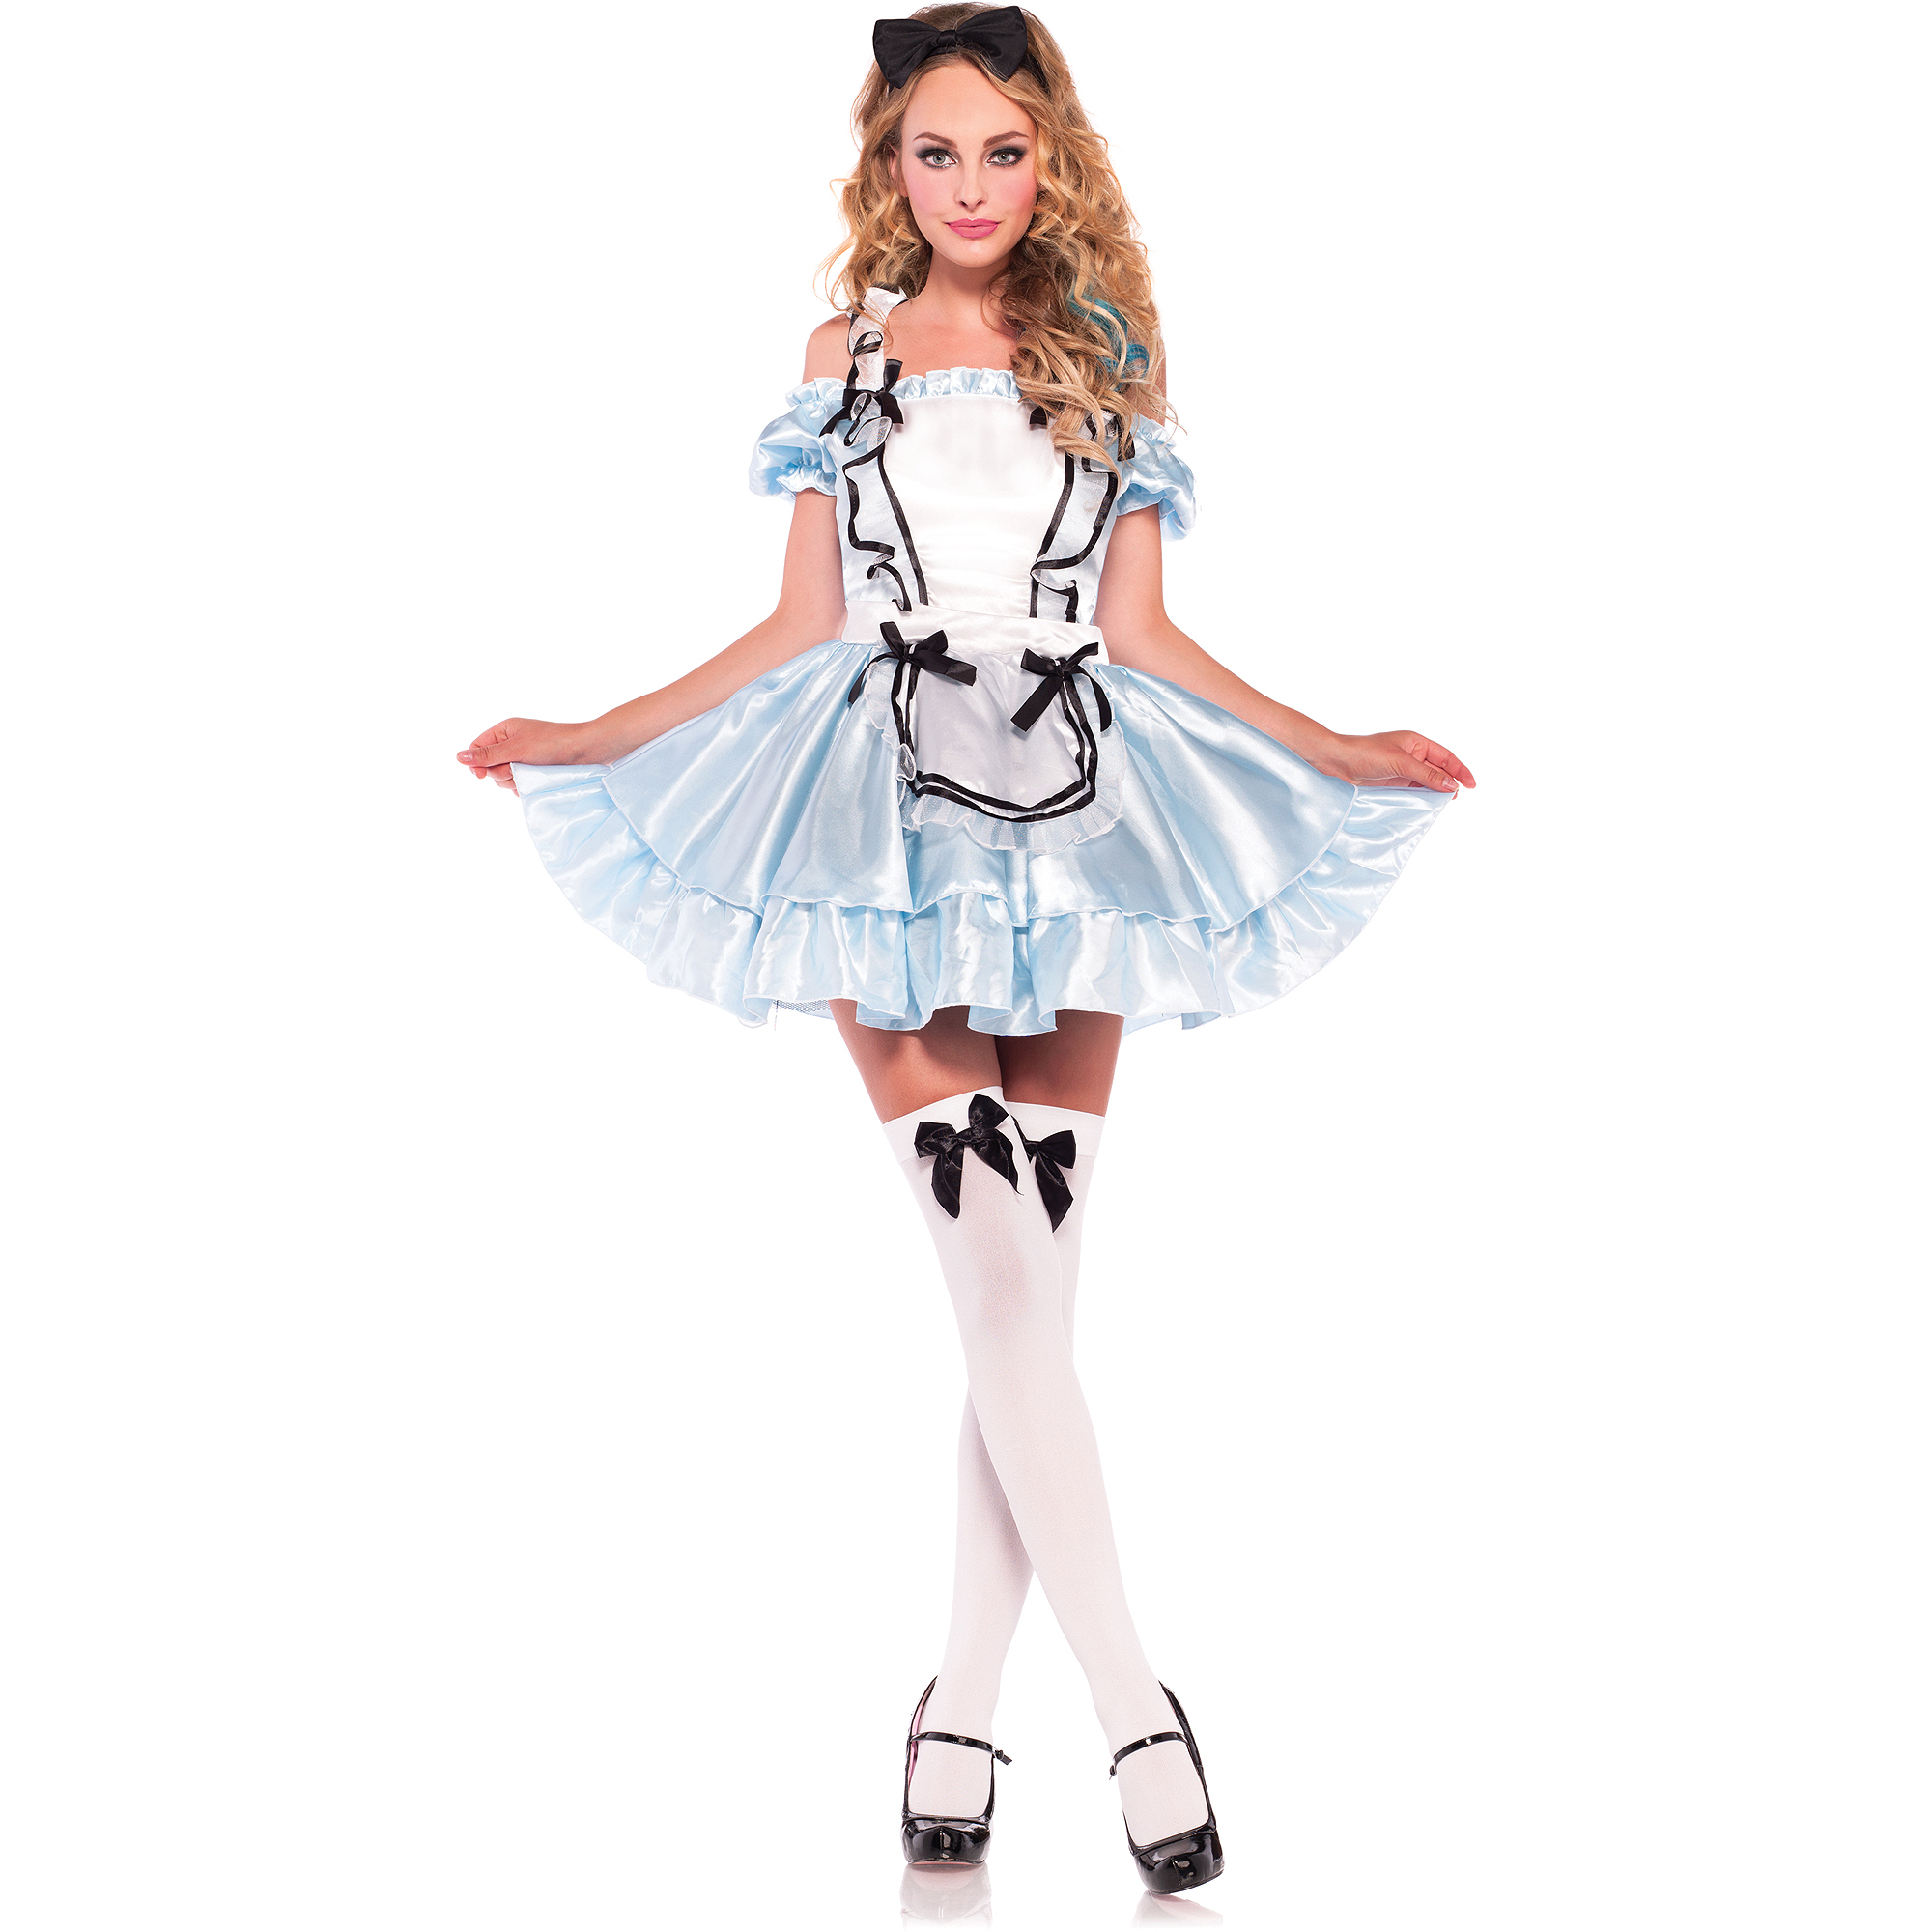 Darling Alice Adult Halloween Costume - Walmart.com